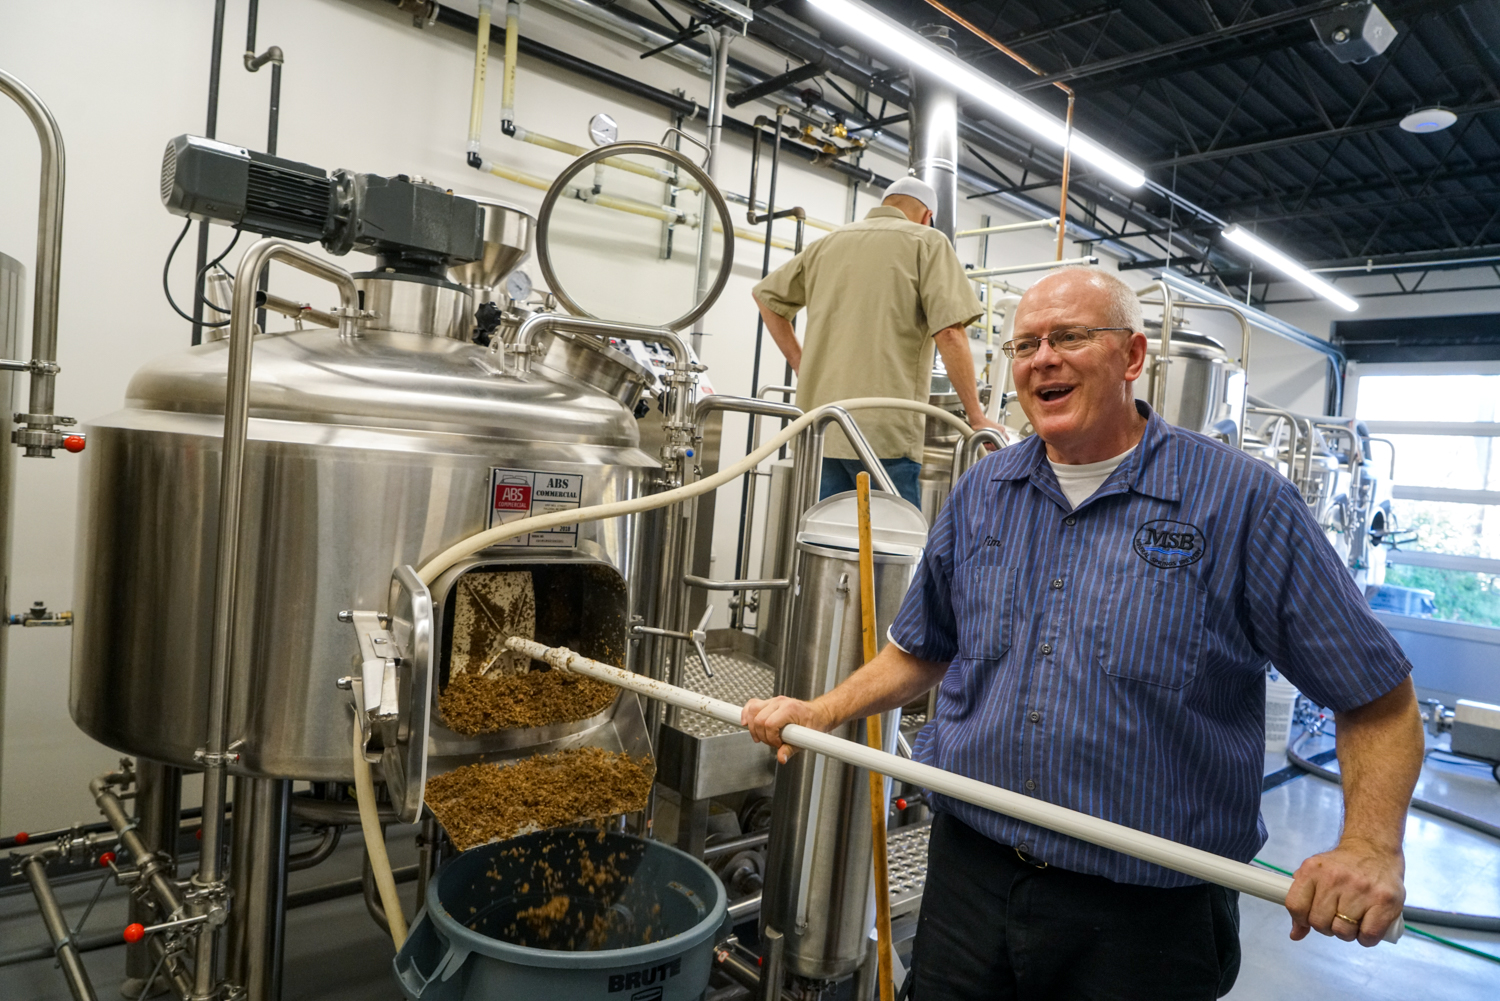 Tim Pelton scoops spent grain from Mineral Springs Brewery's brewing system // Photo by James Figy